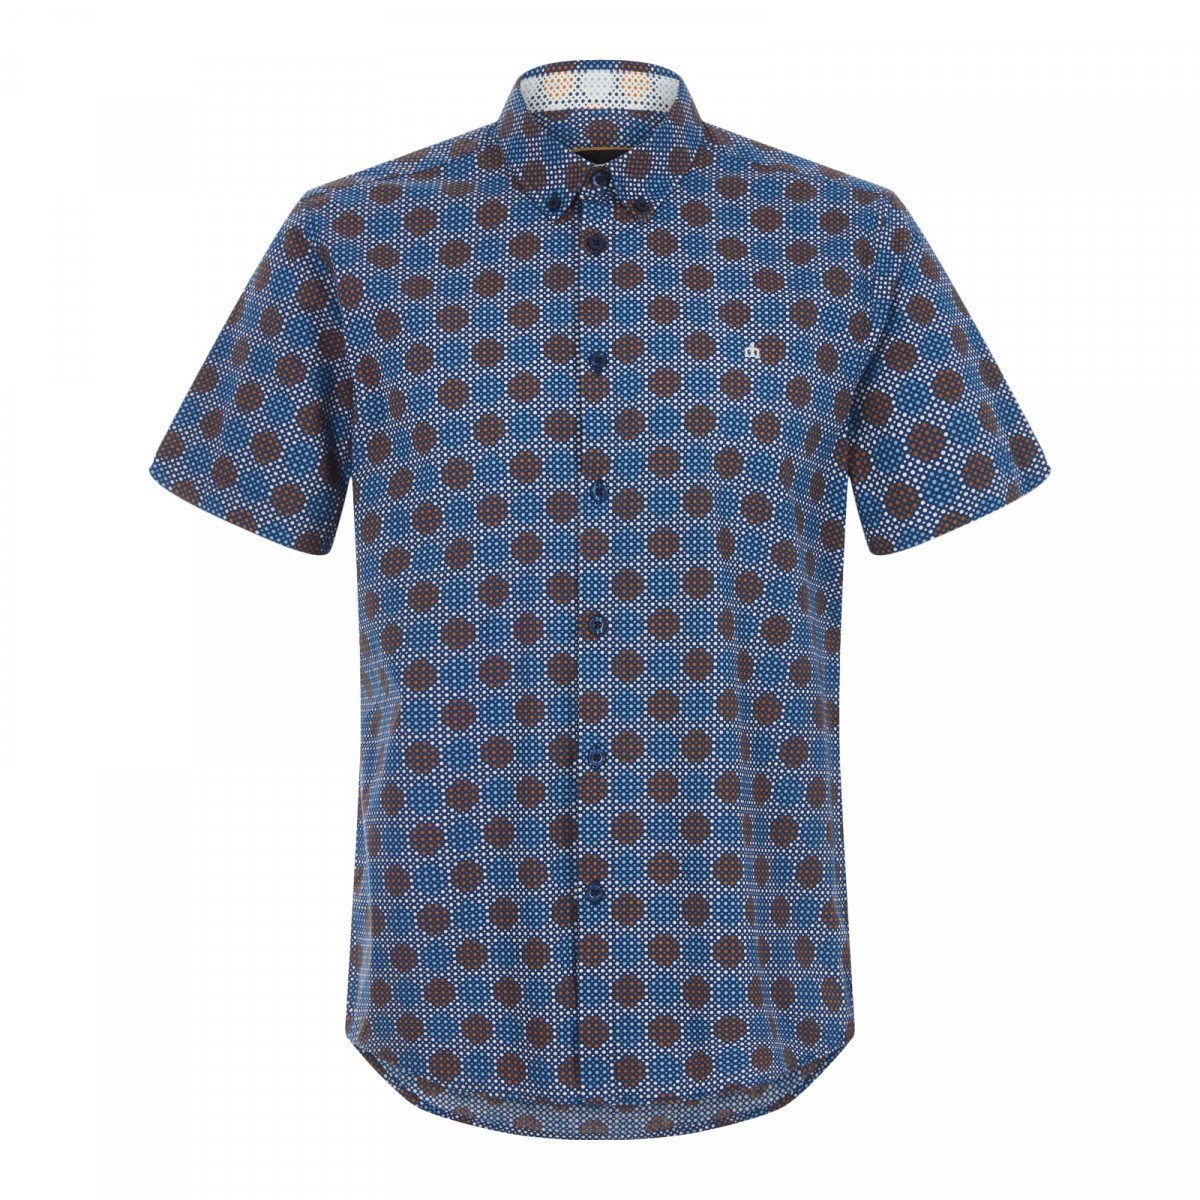 Merc Caspian retro polka-dot short sleeve shirt